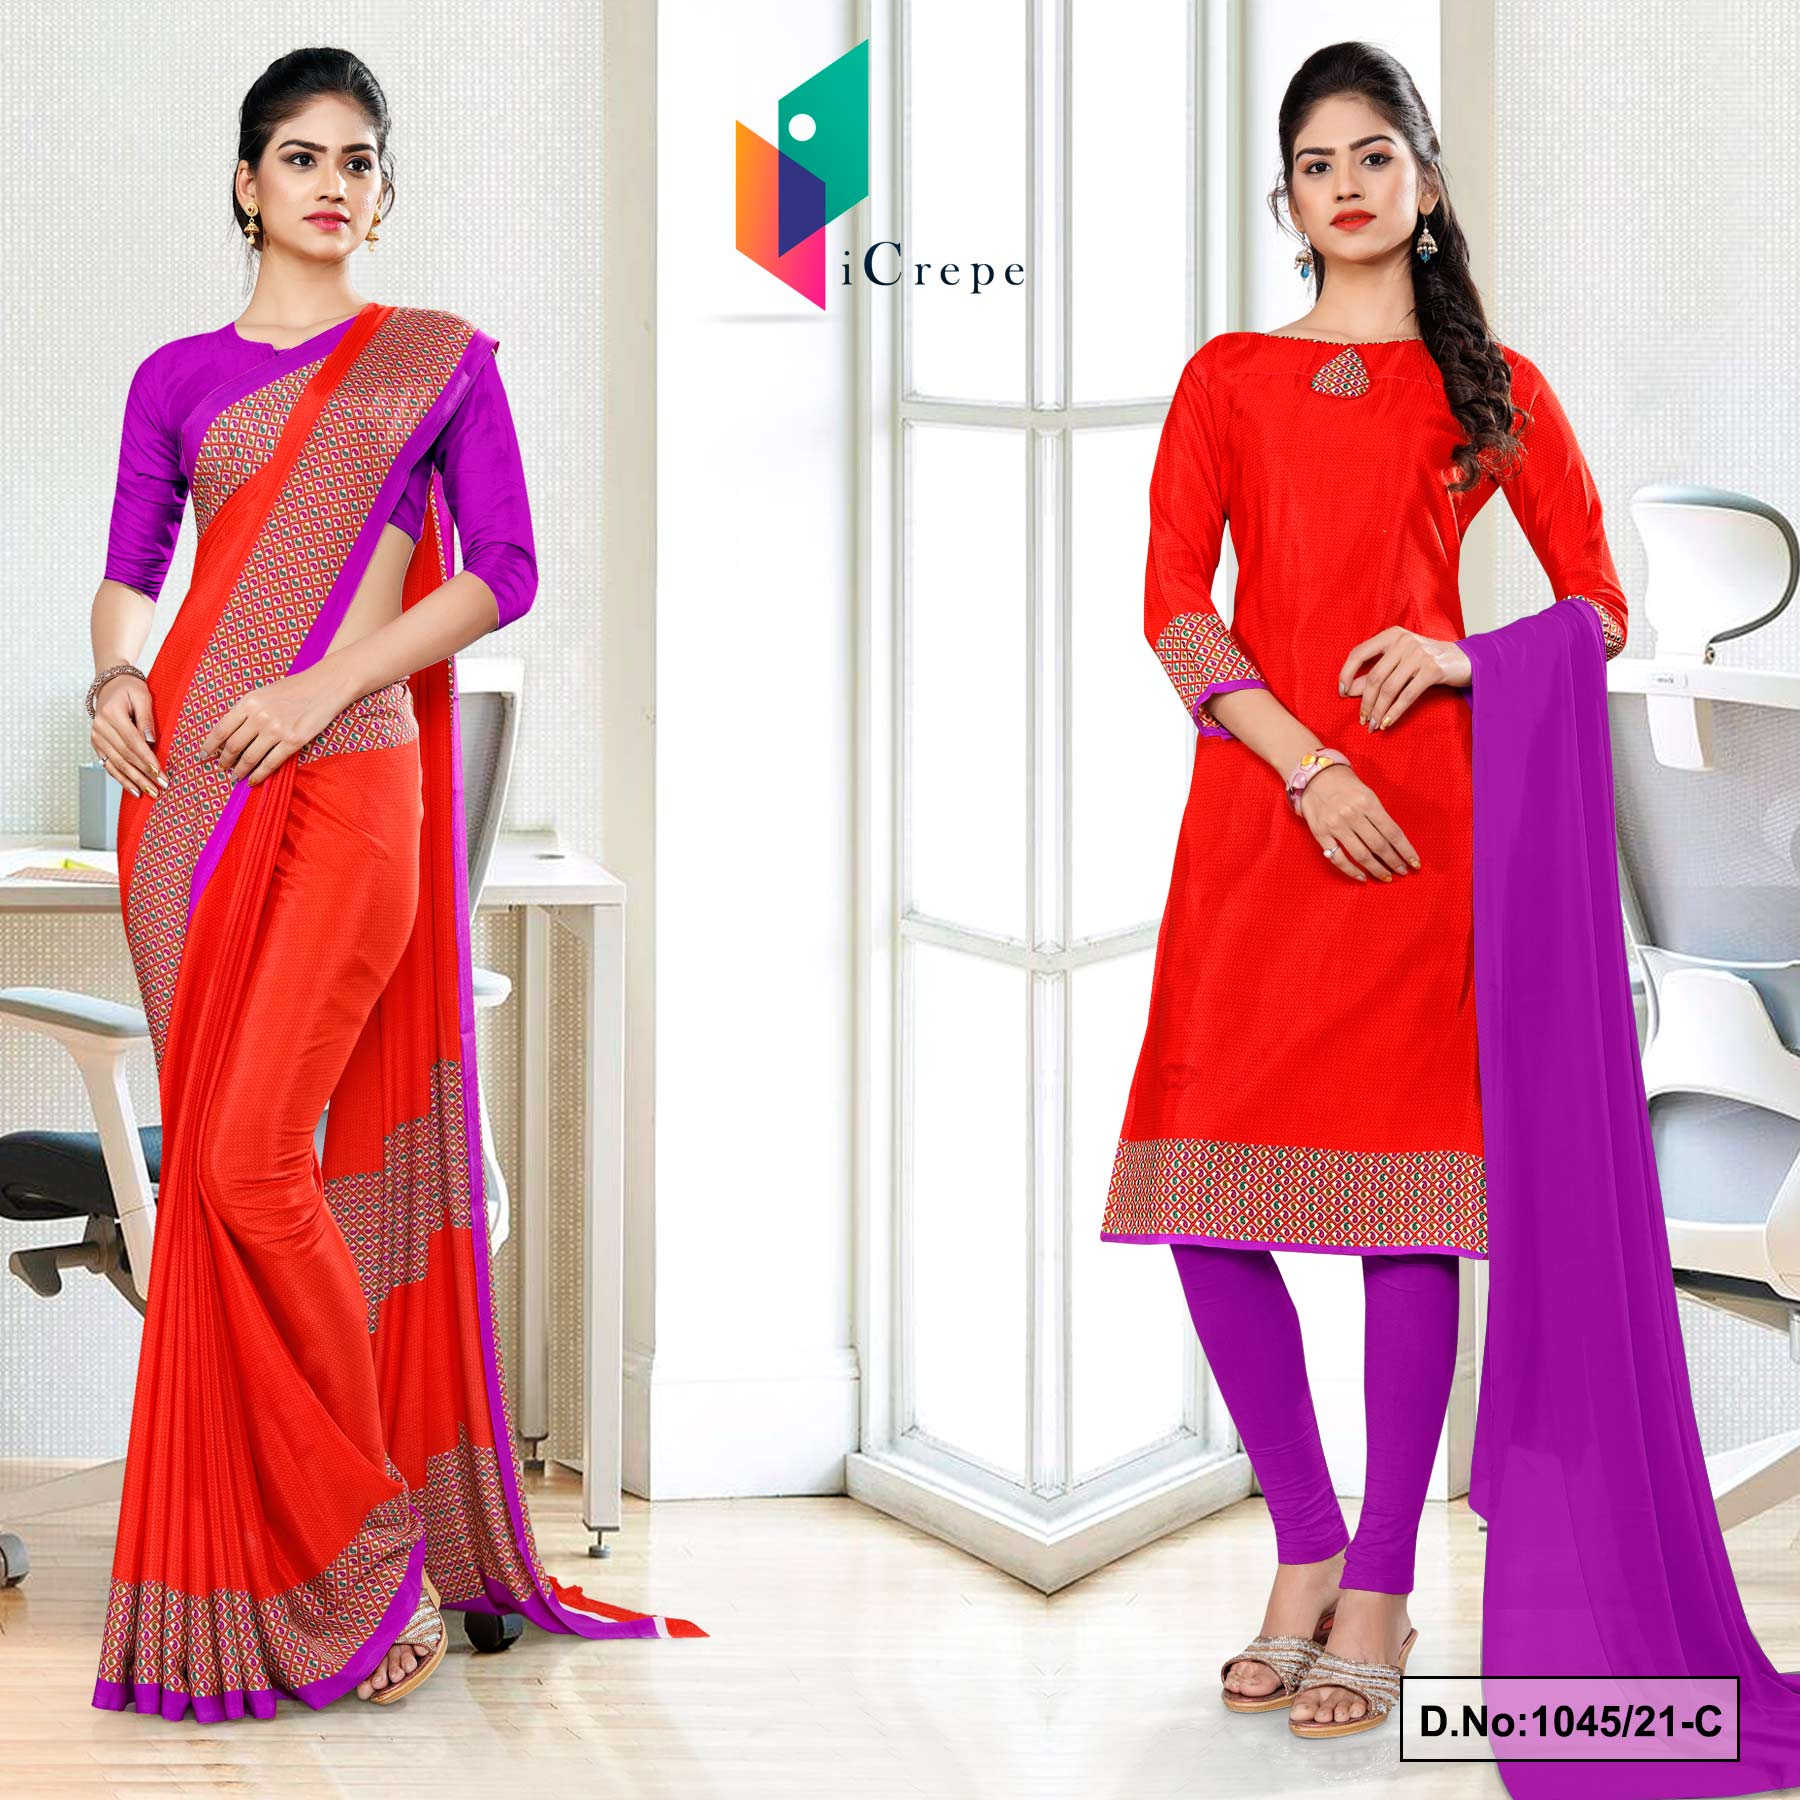 Tomato Lavender Premium Italian Silk Crepe Uniform Sarees Salwar Combo for Office Wear